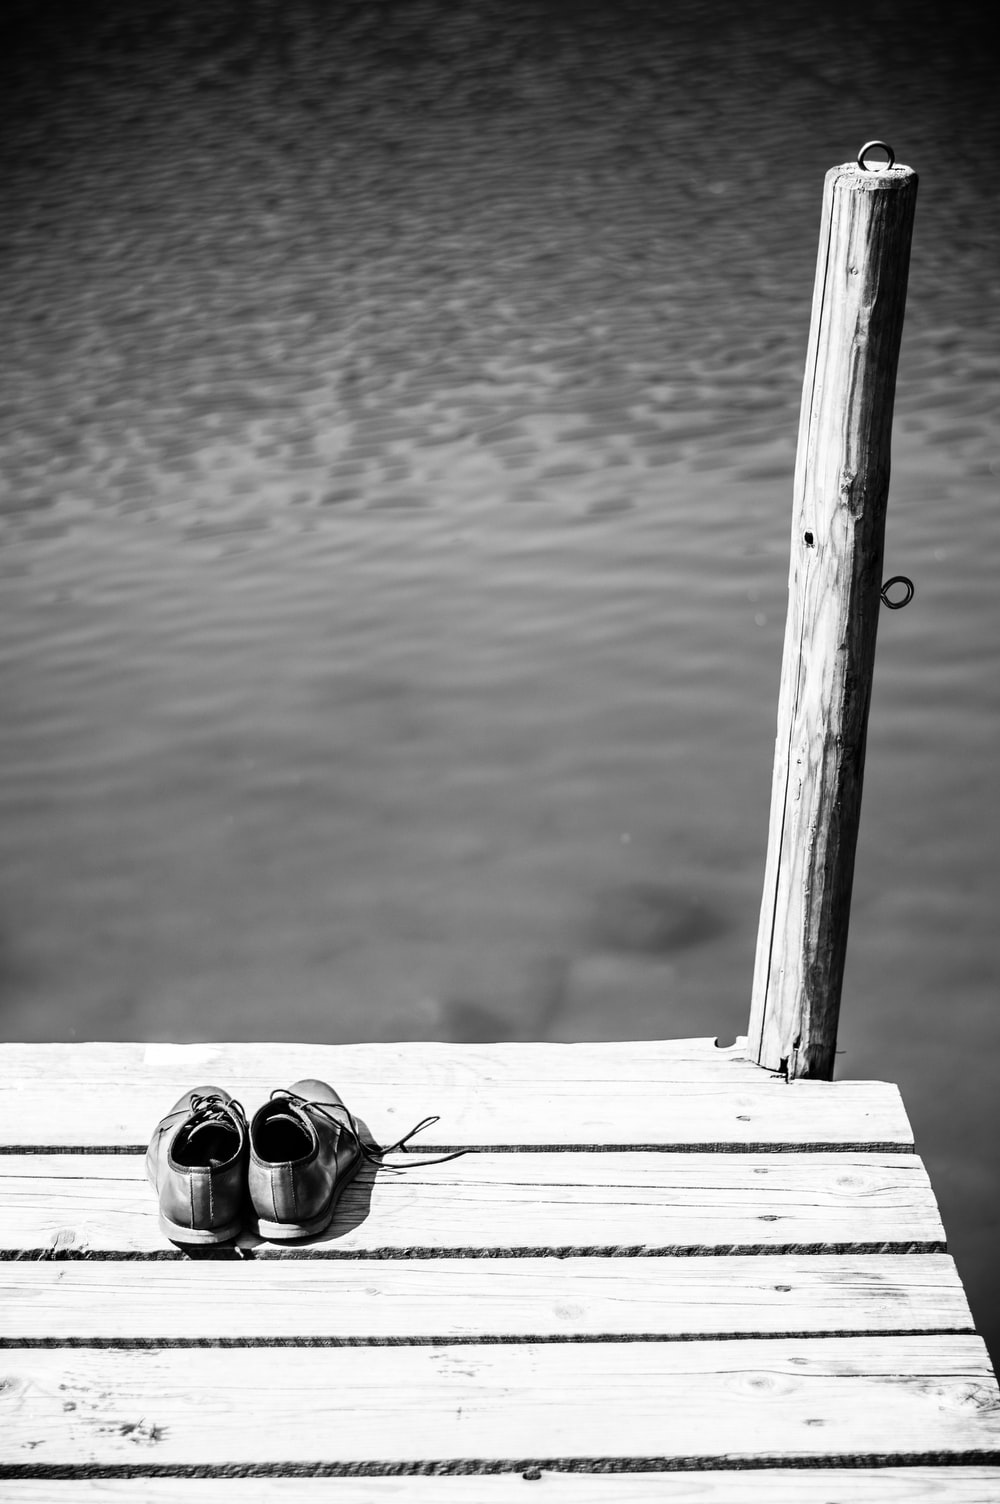 pair of shoes on dock